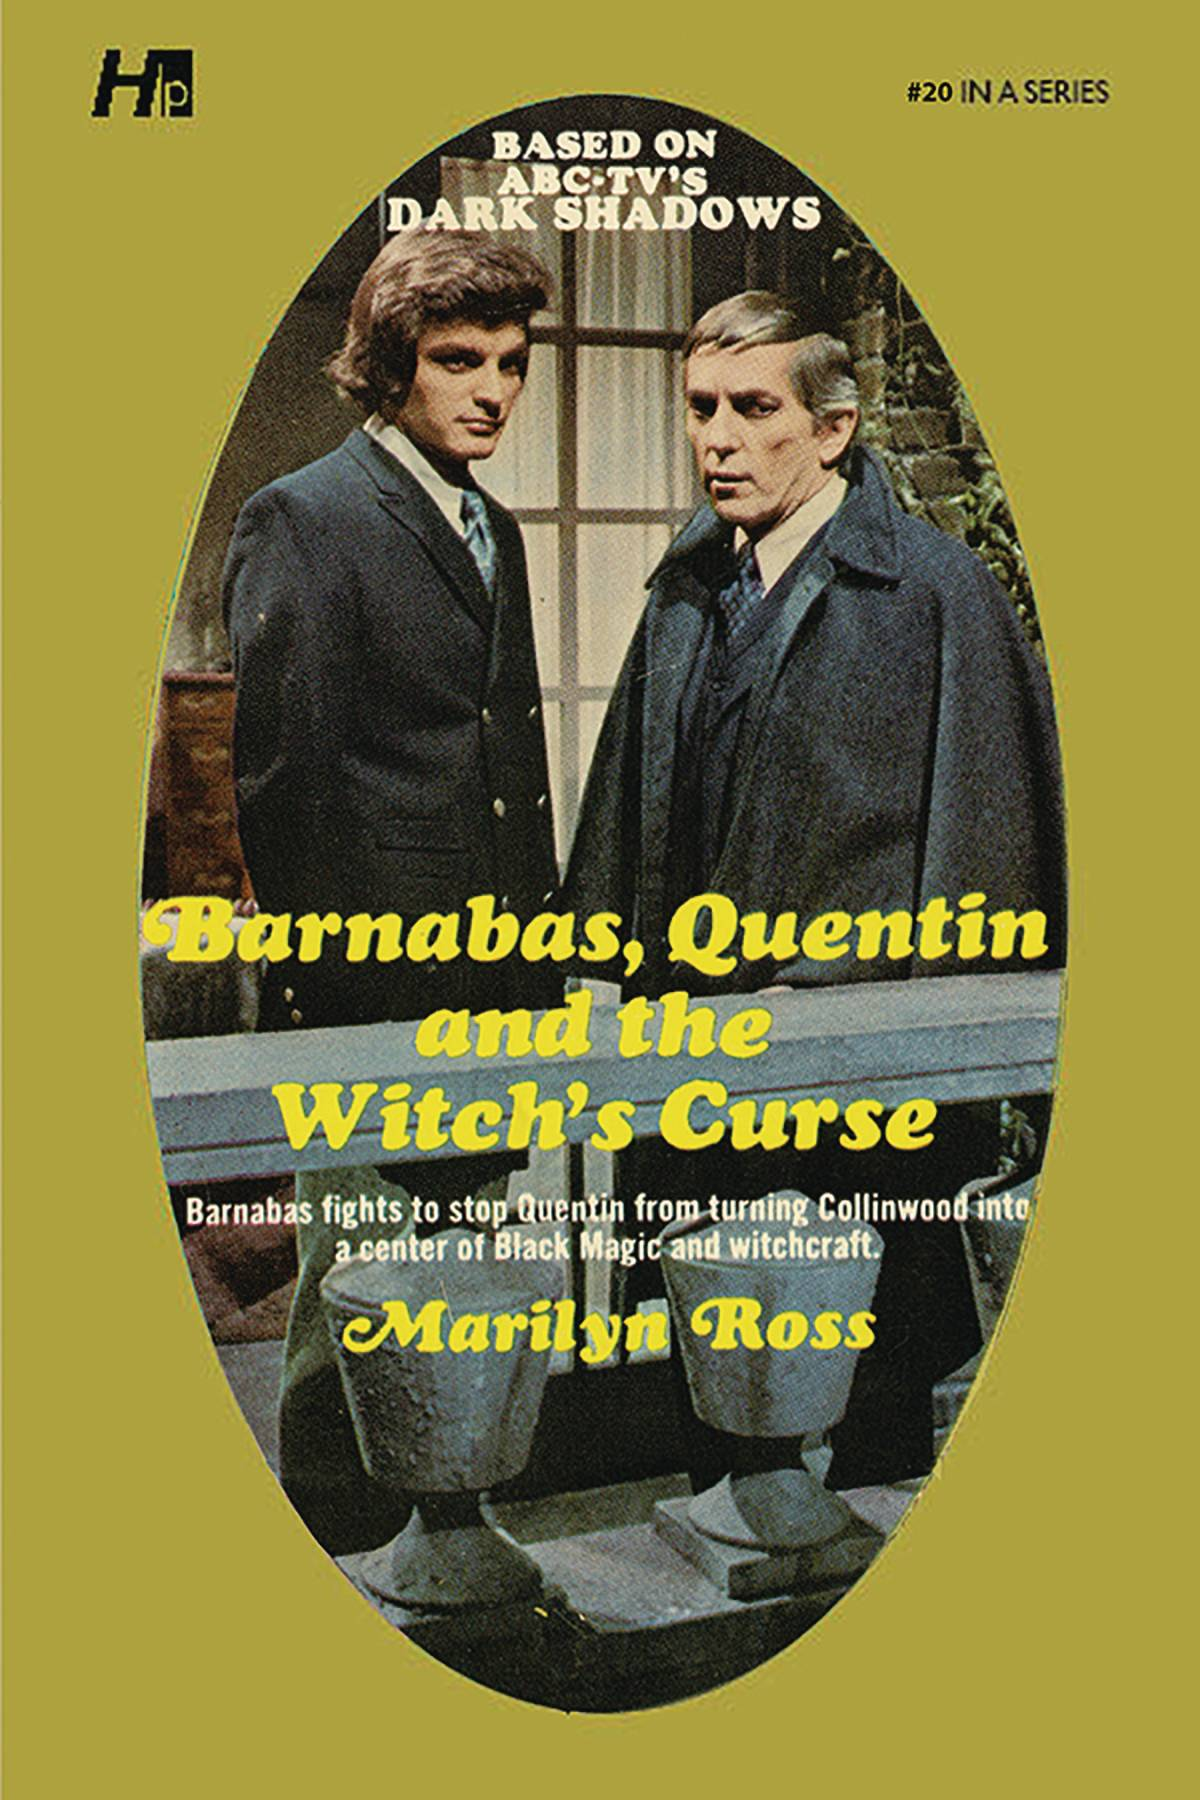 DARK SHADOWS PB LIB NOVEL VOL 20 WITCHS CURSE